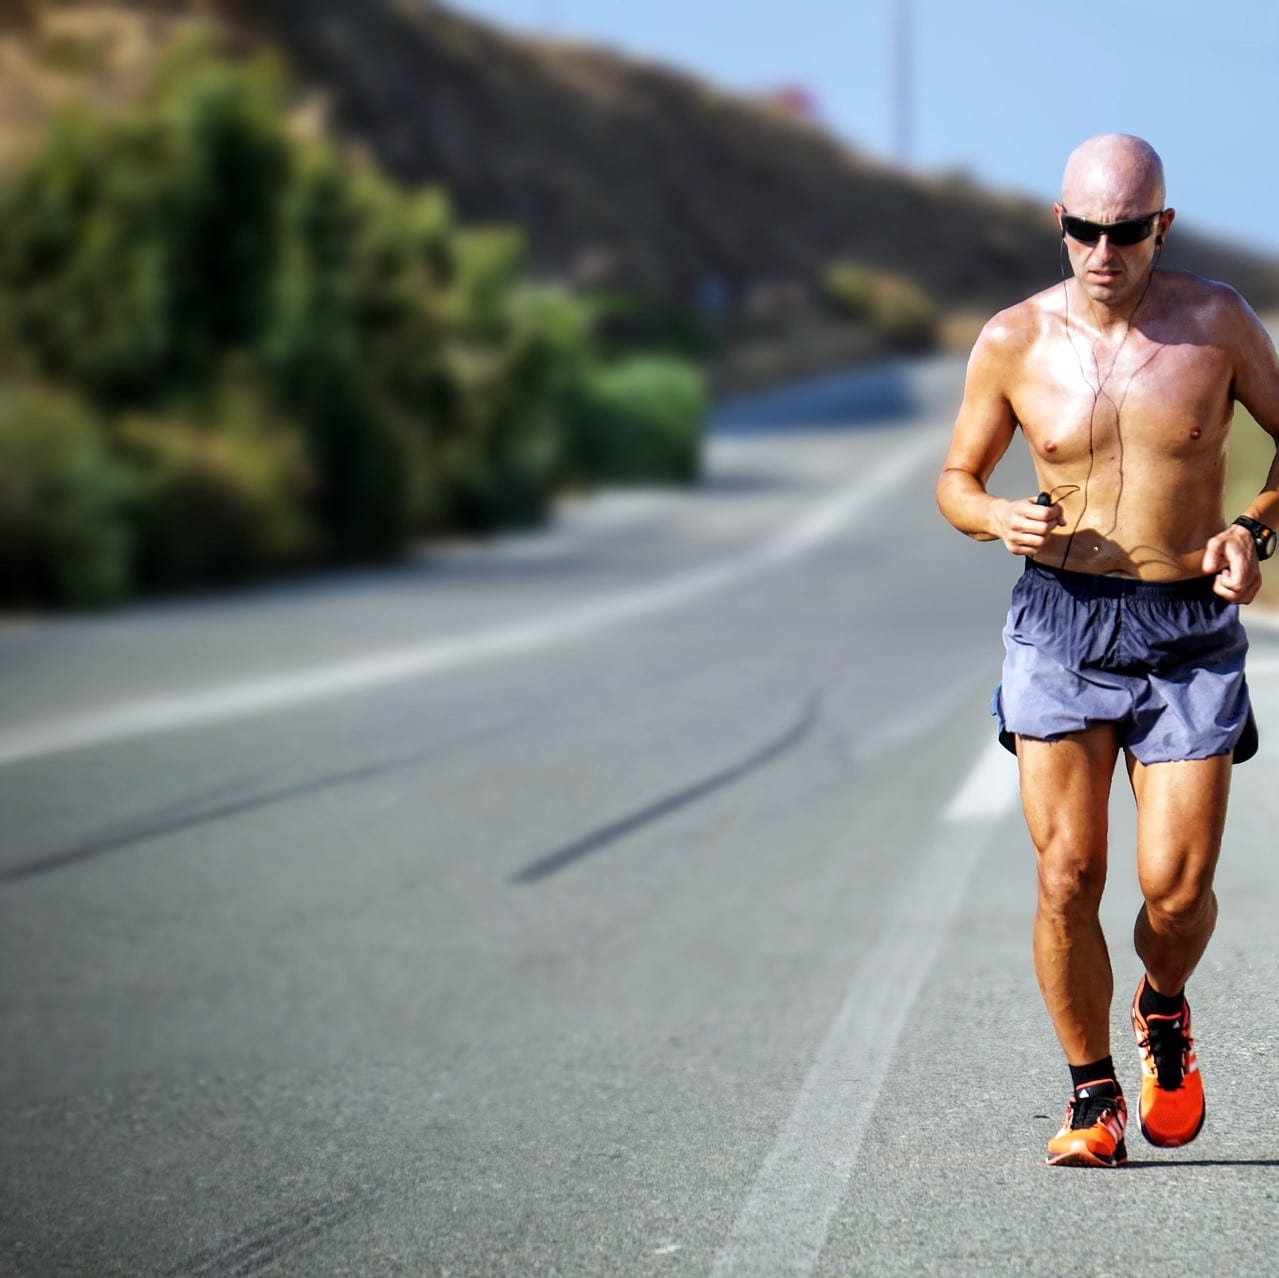 Man running on a road without a shirt